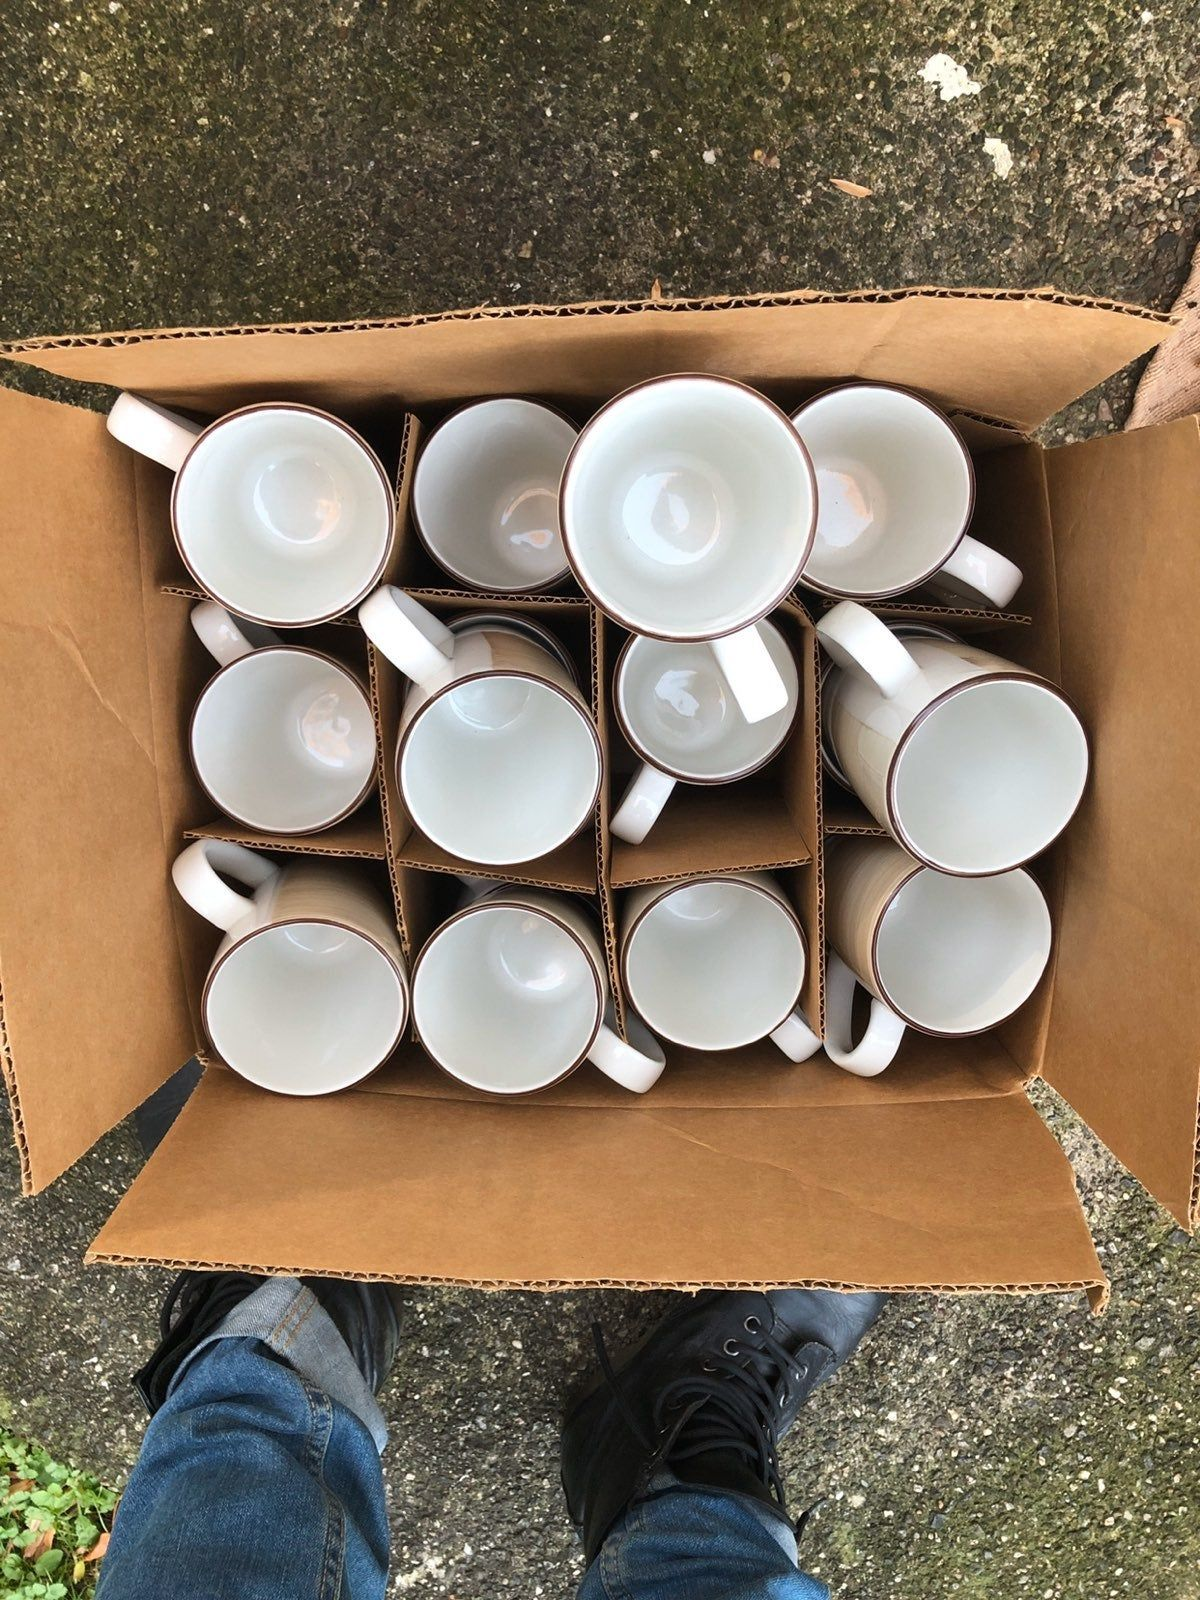 28+ Wholesale coffee mugs for resale ideas in 2021